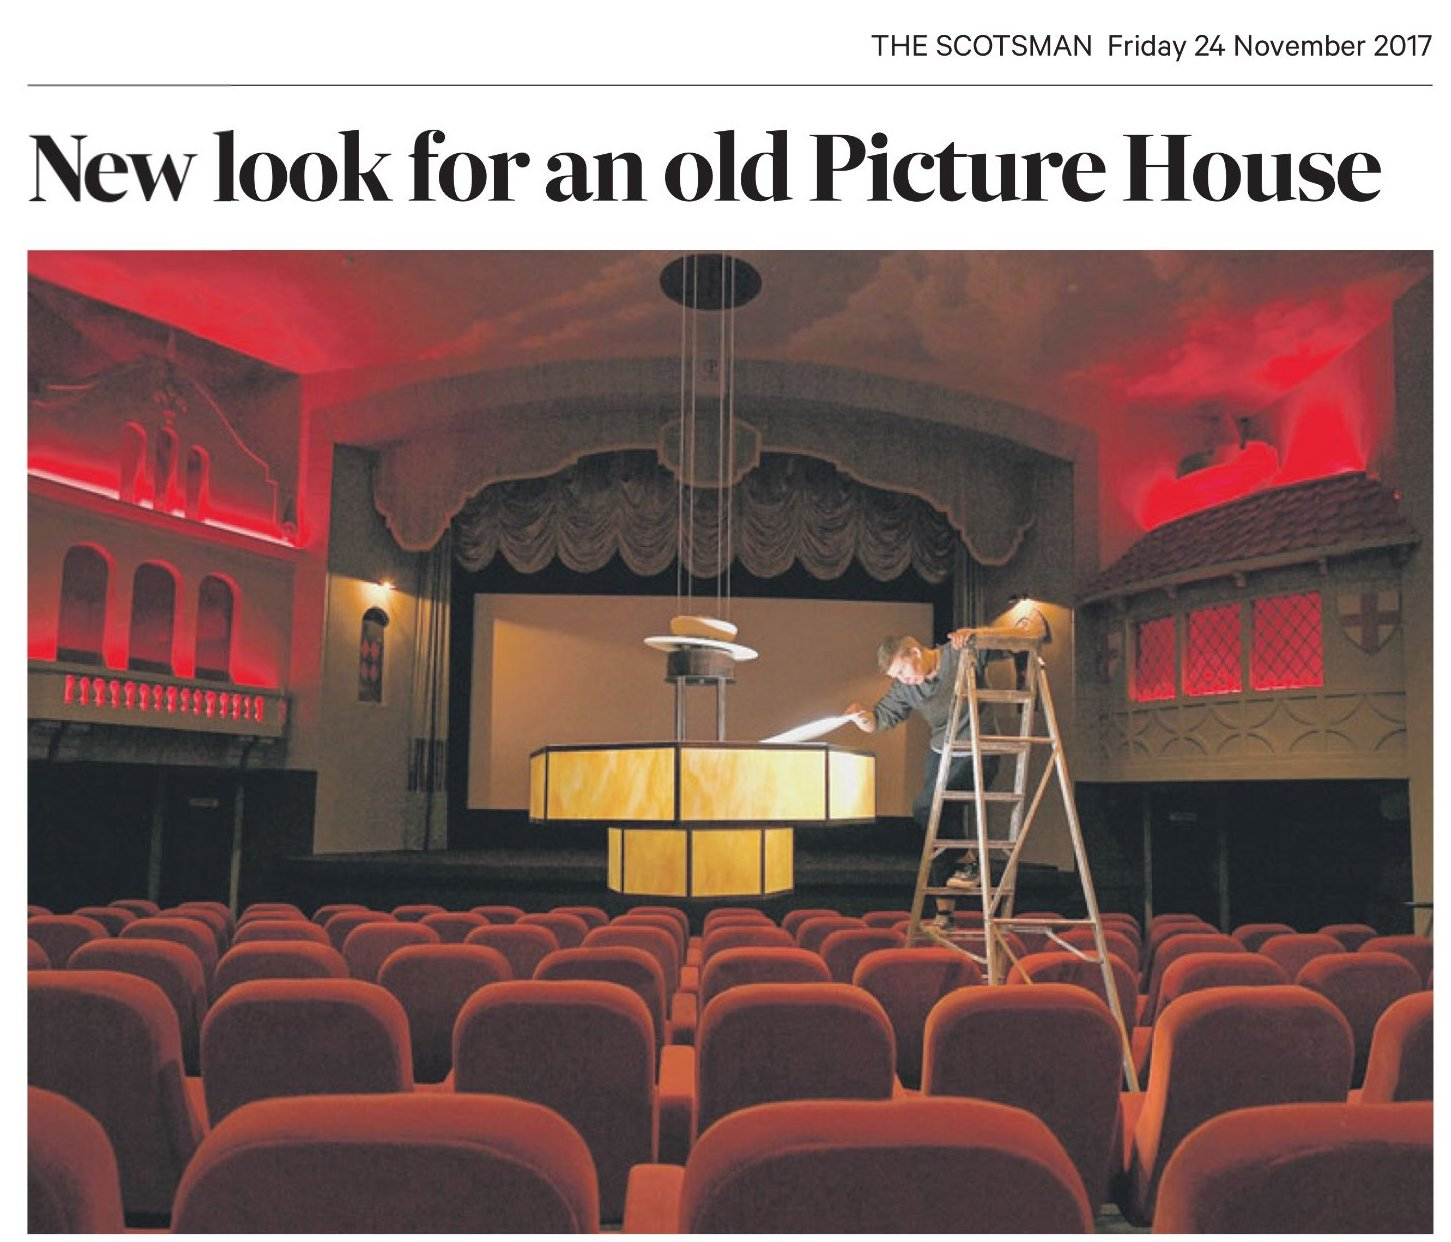 The picture shows Ellen Mainwood, the cinema's new general manager, checking a light in the main auditorium